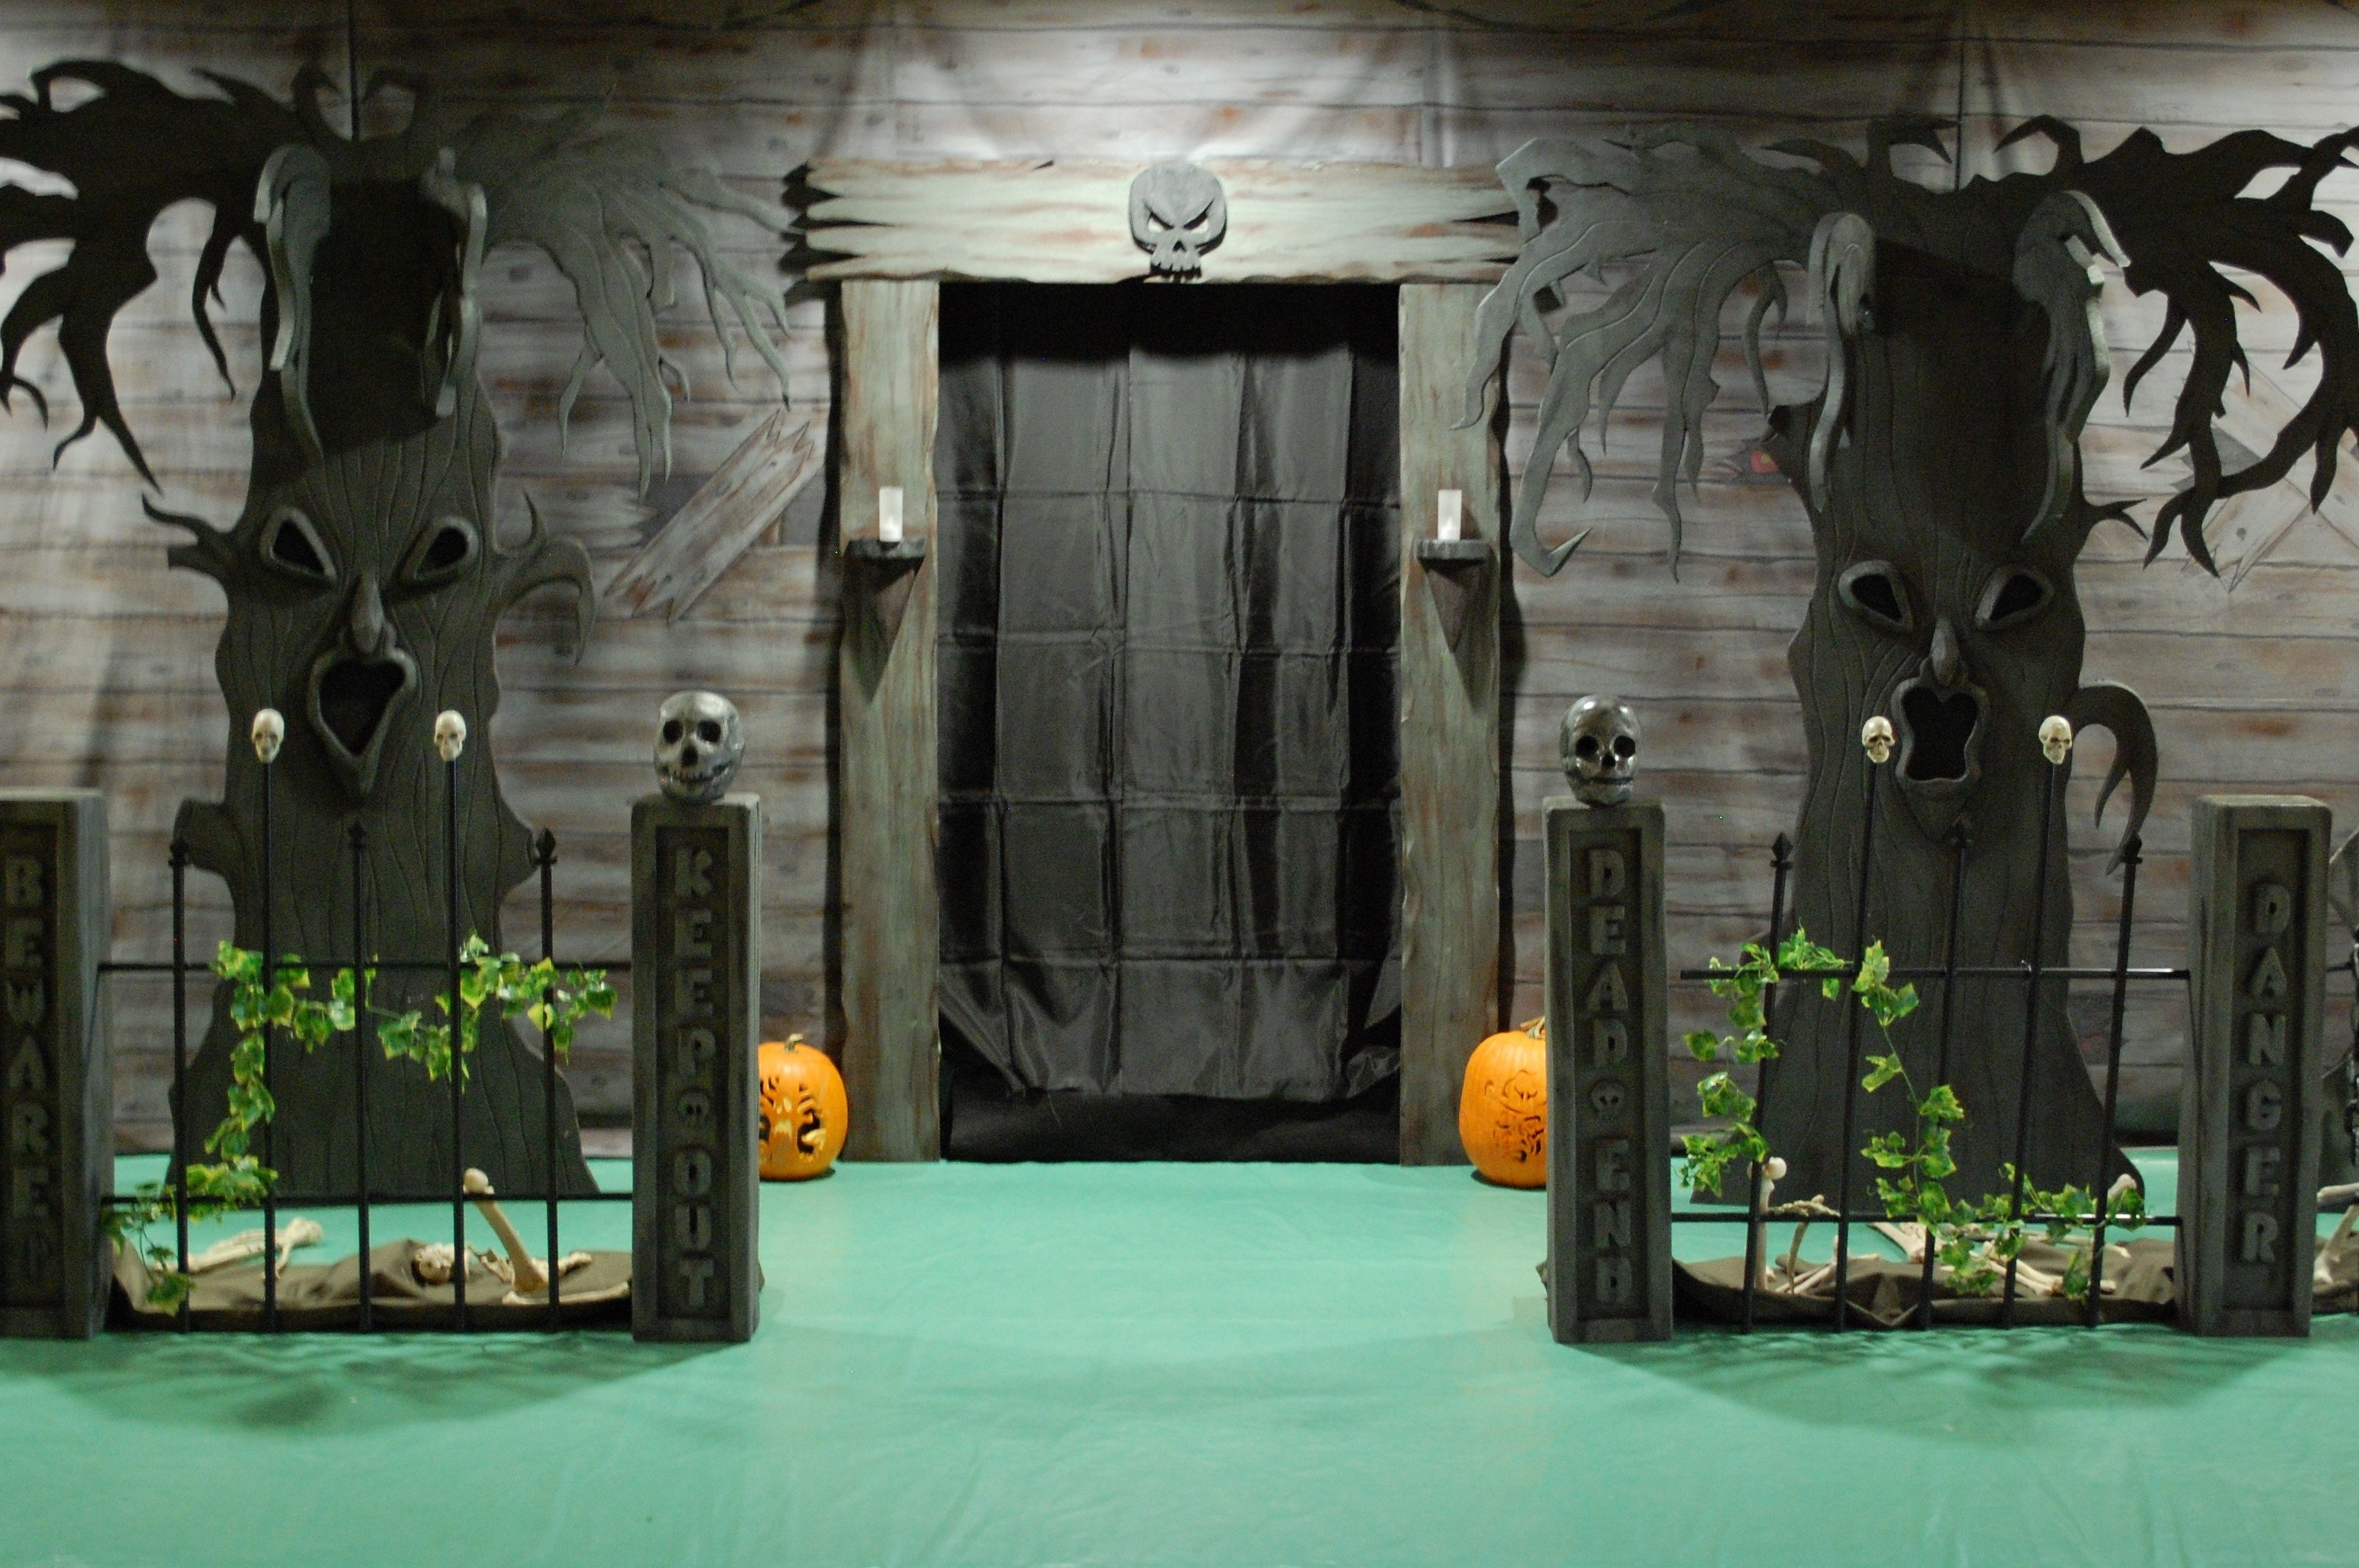 10 Stunning Halloween Haunted House Room Ideas haunted house ideas make your own decorating home art decor 24314 3 2020